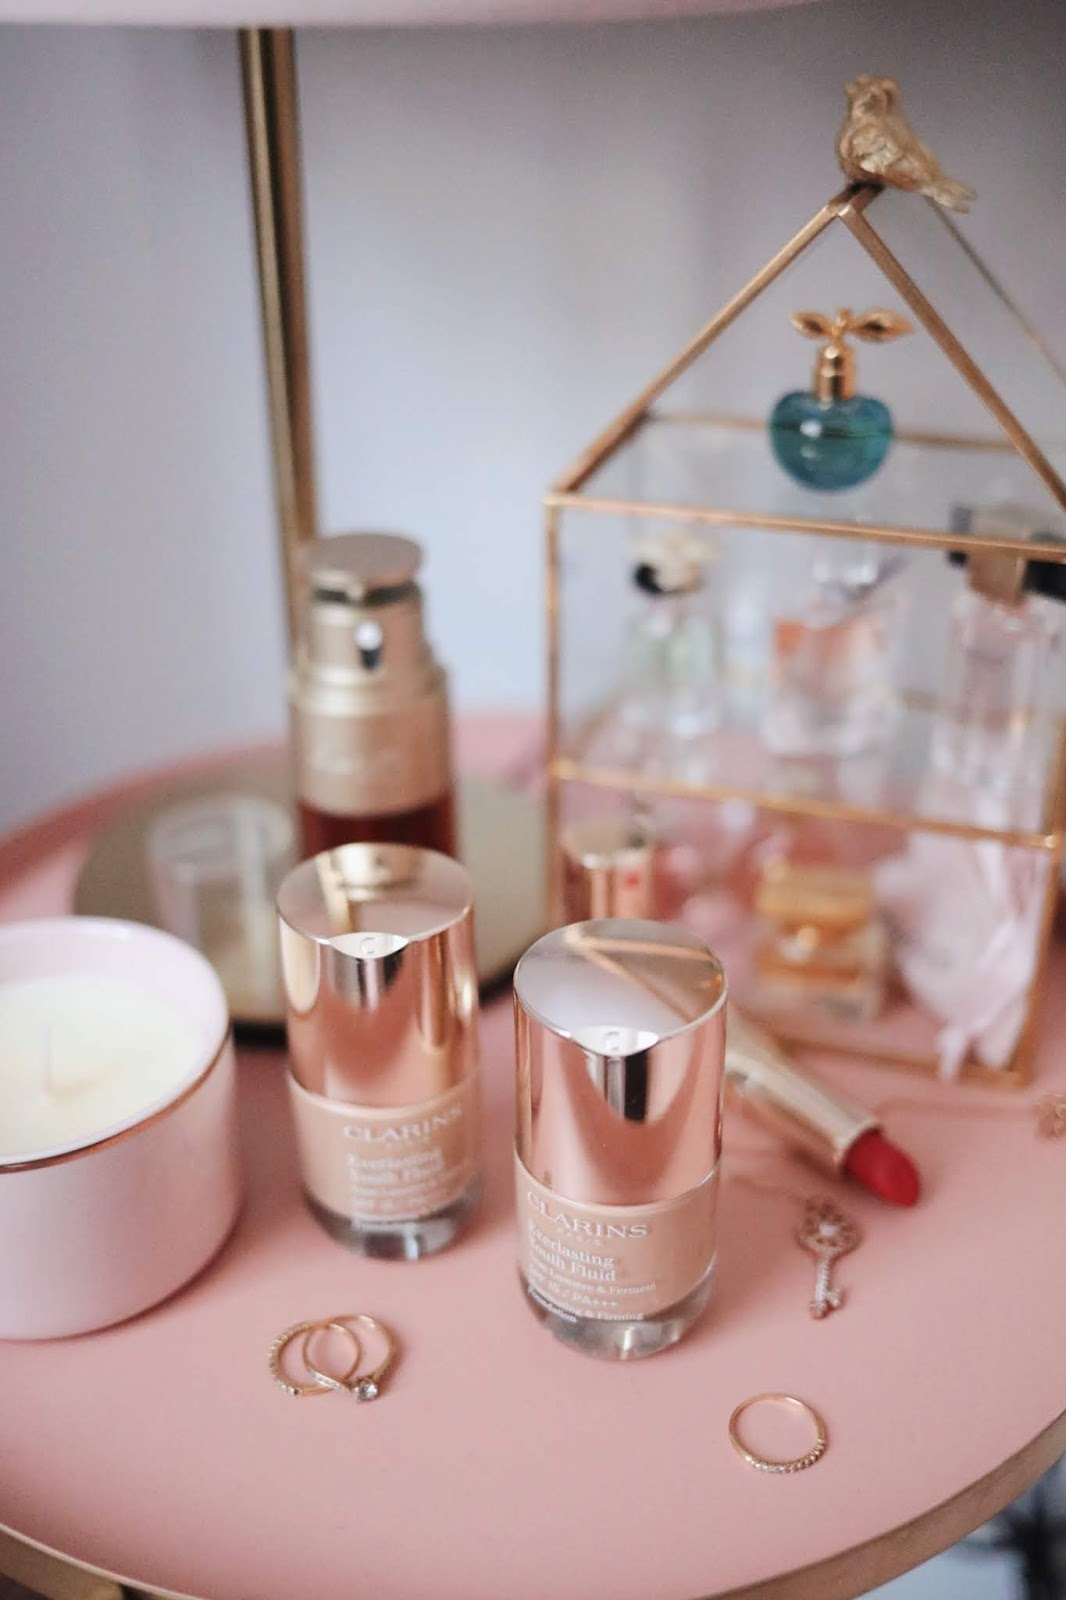 CLARINS , EVERLASTING YOUTH FLUID, Clarins France , rose mademoiselle, rosemademoiselle,blog beauté , paris